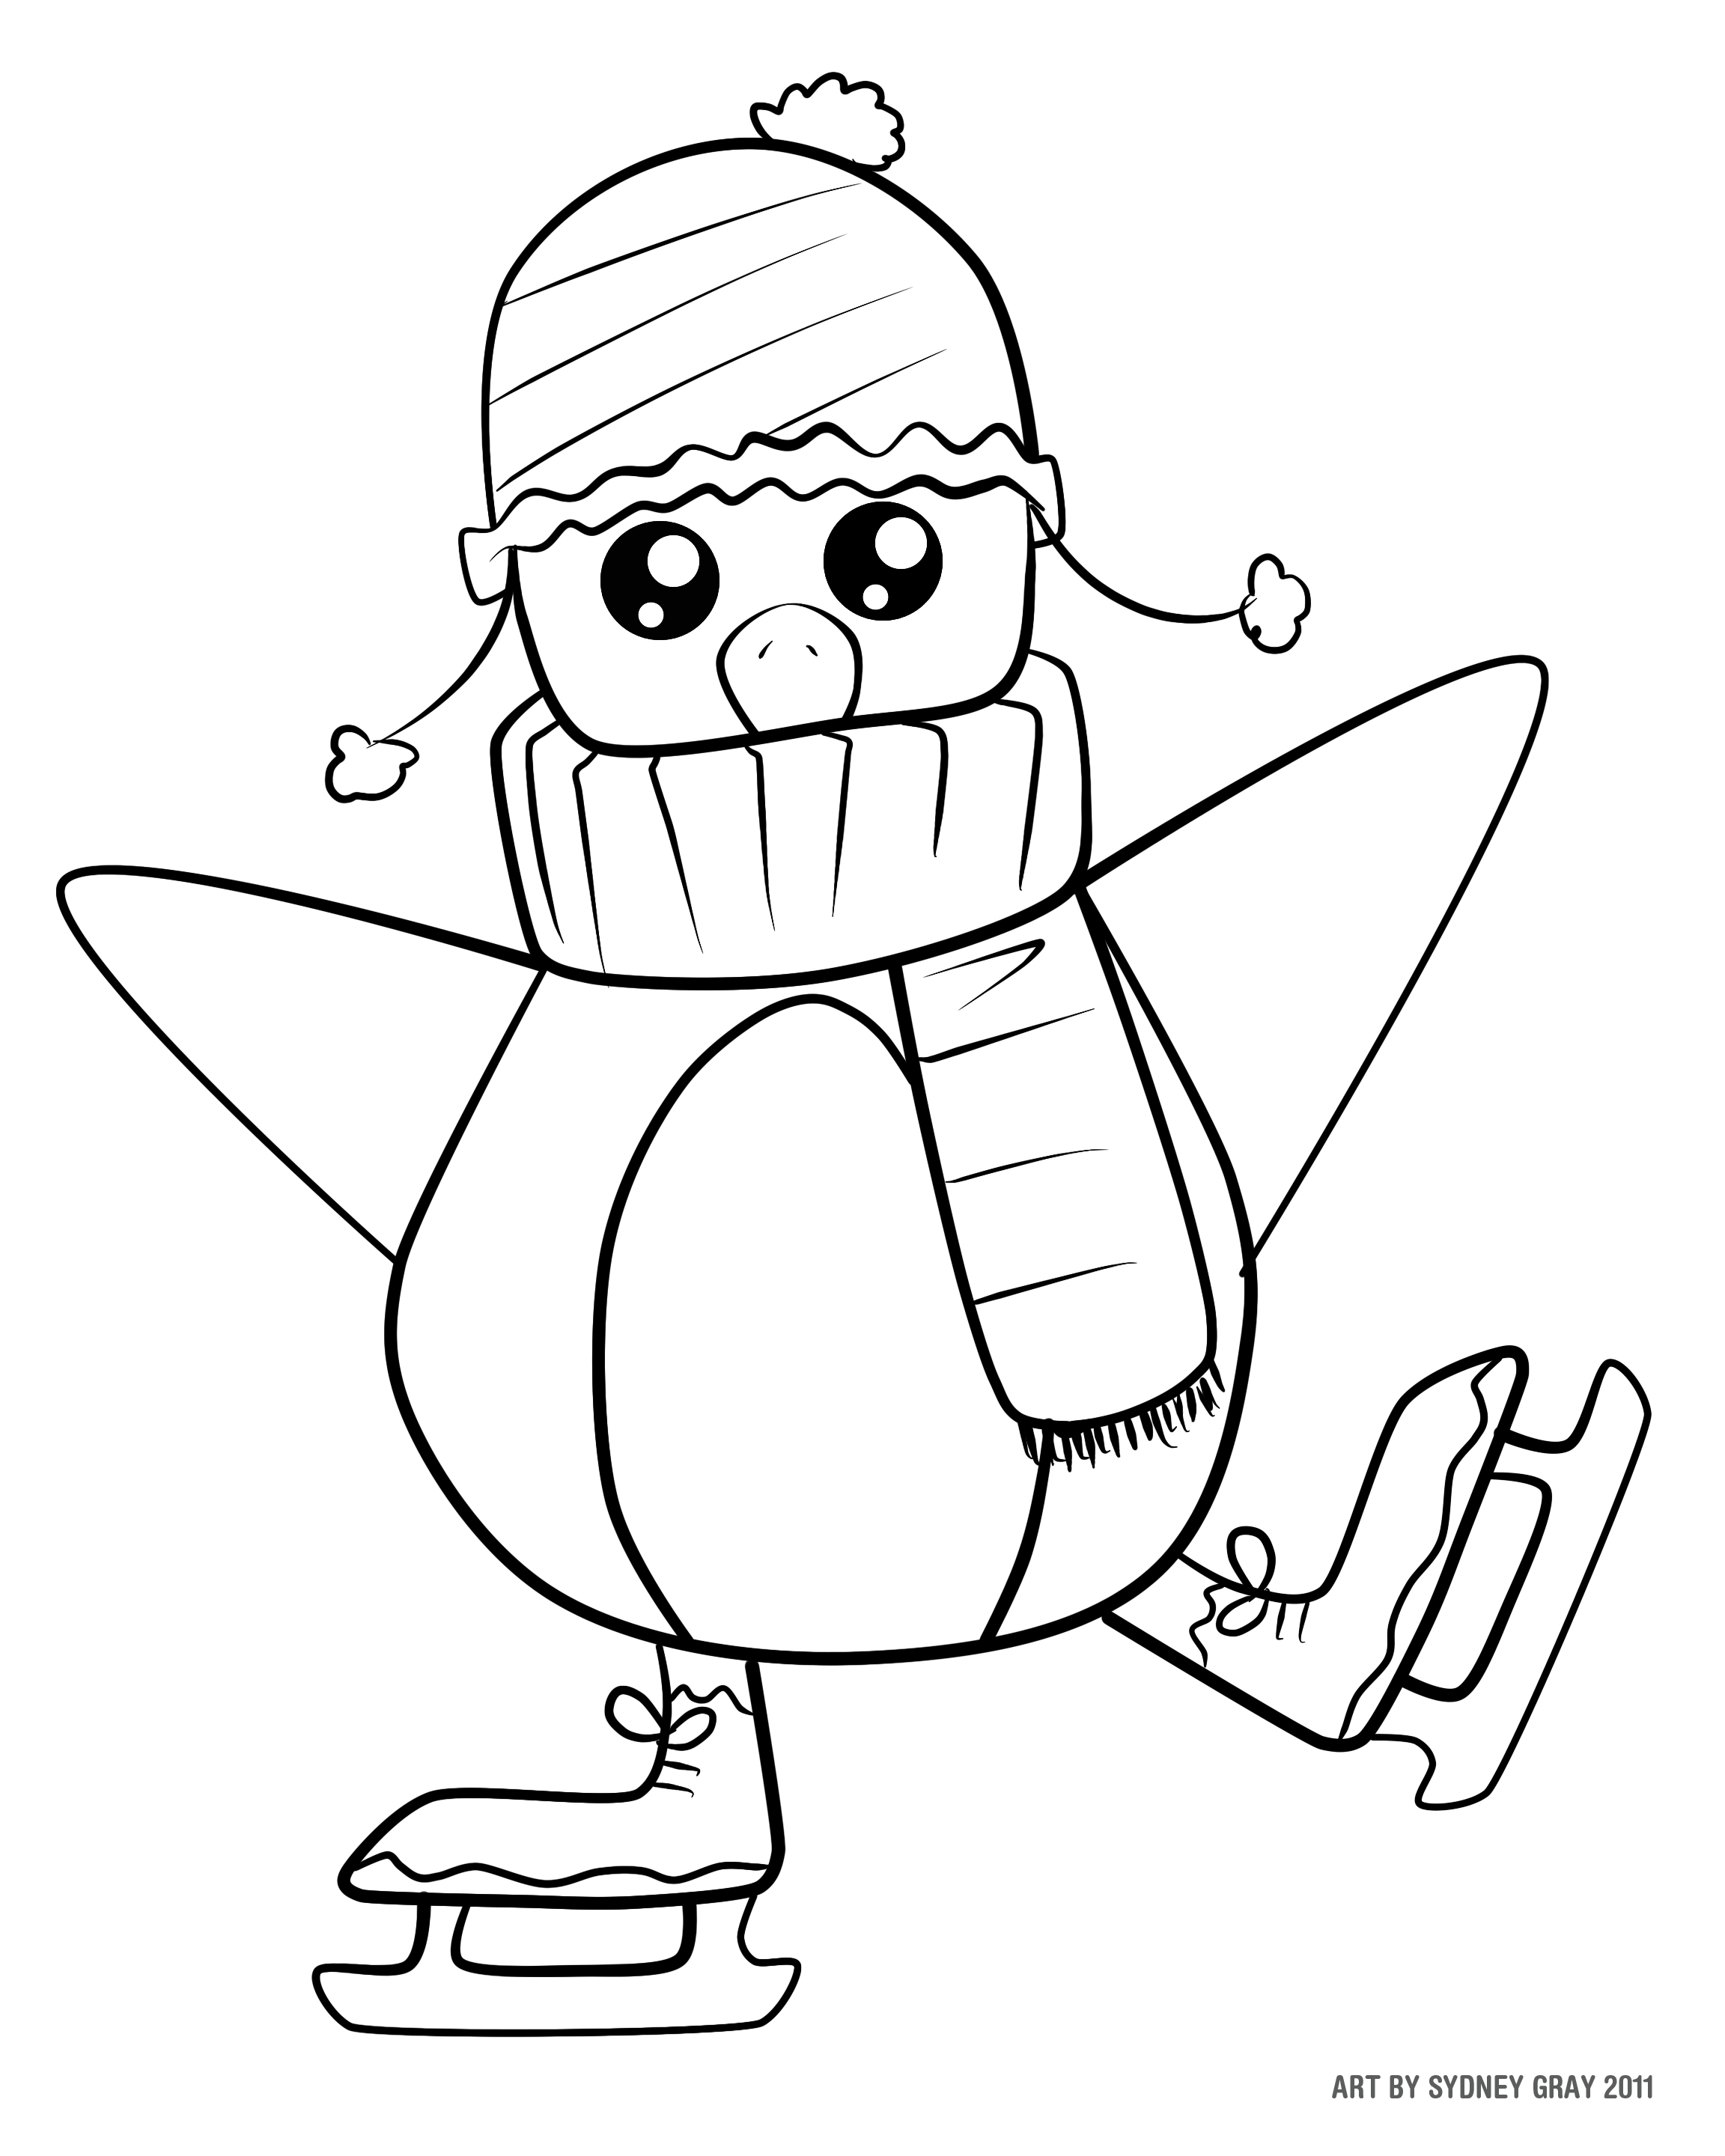 December Coloring Pages To Download And Print For Free